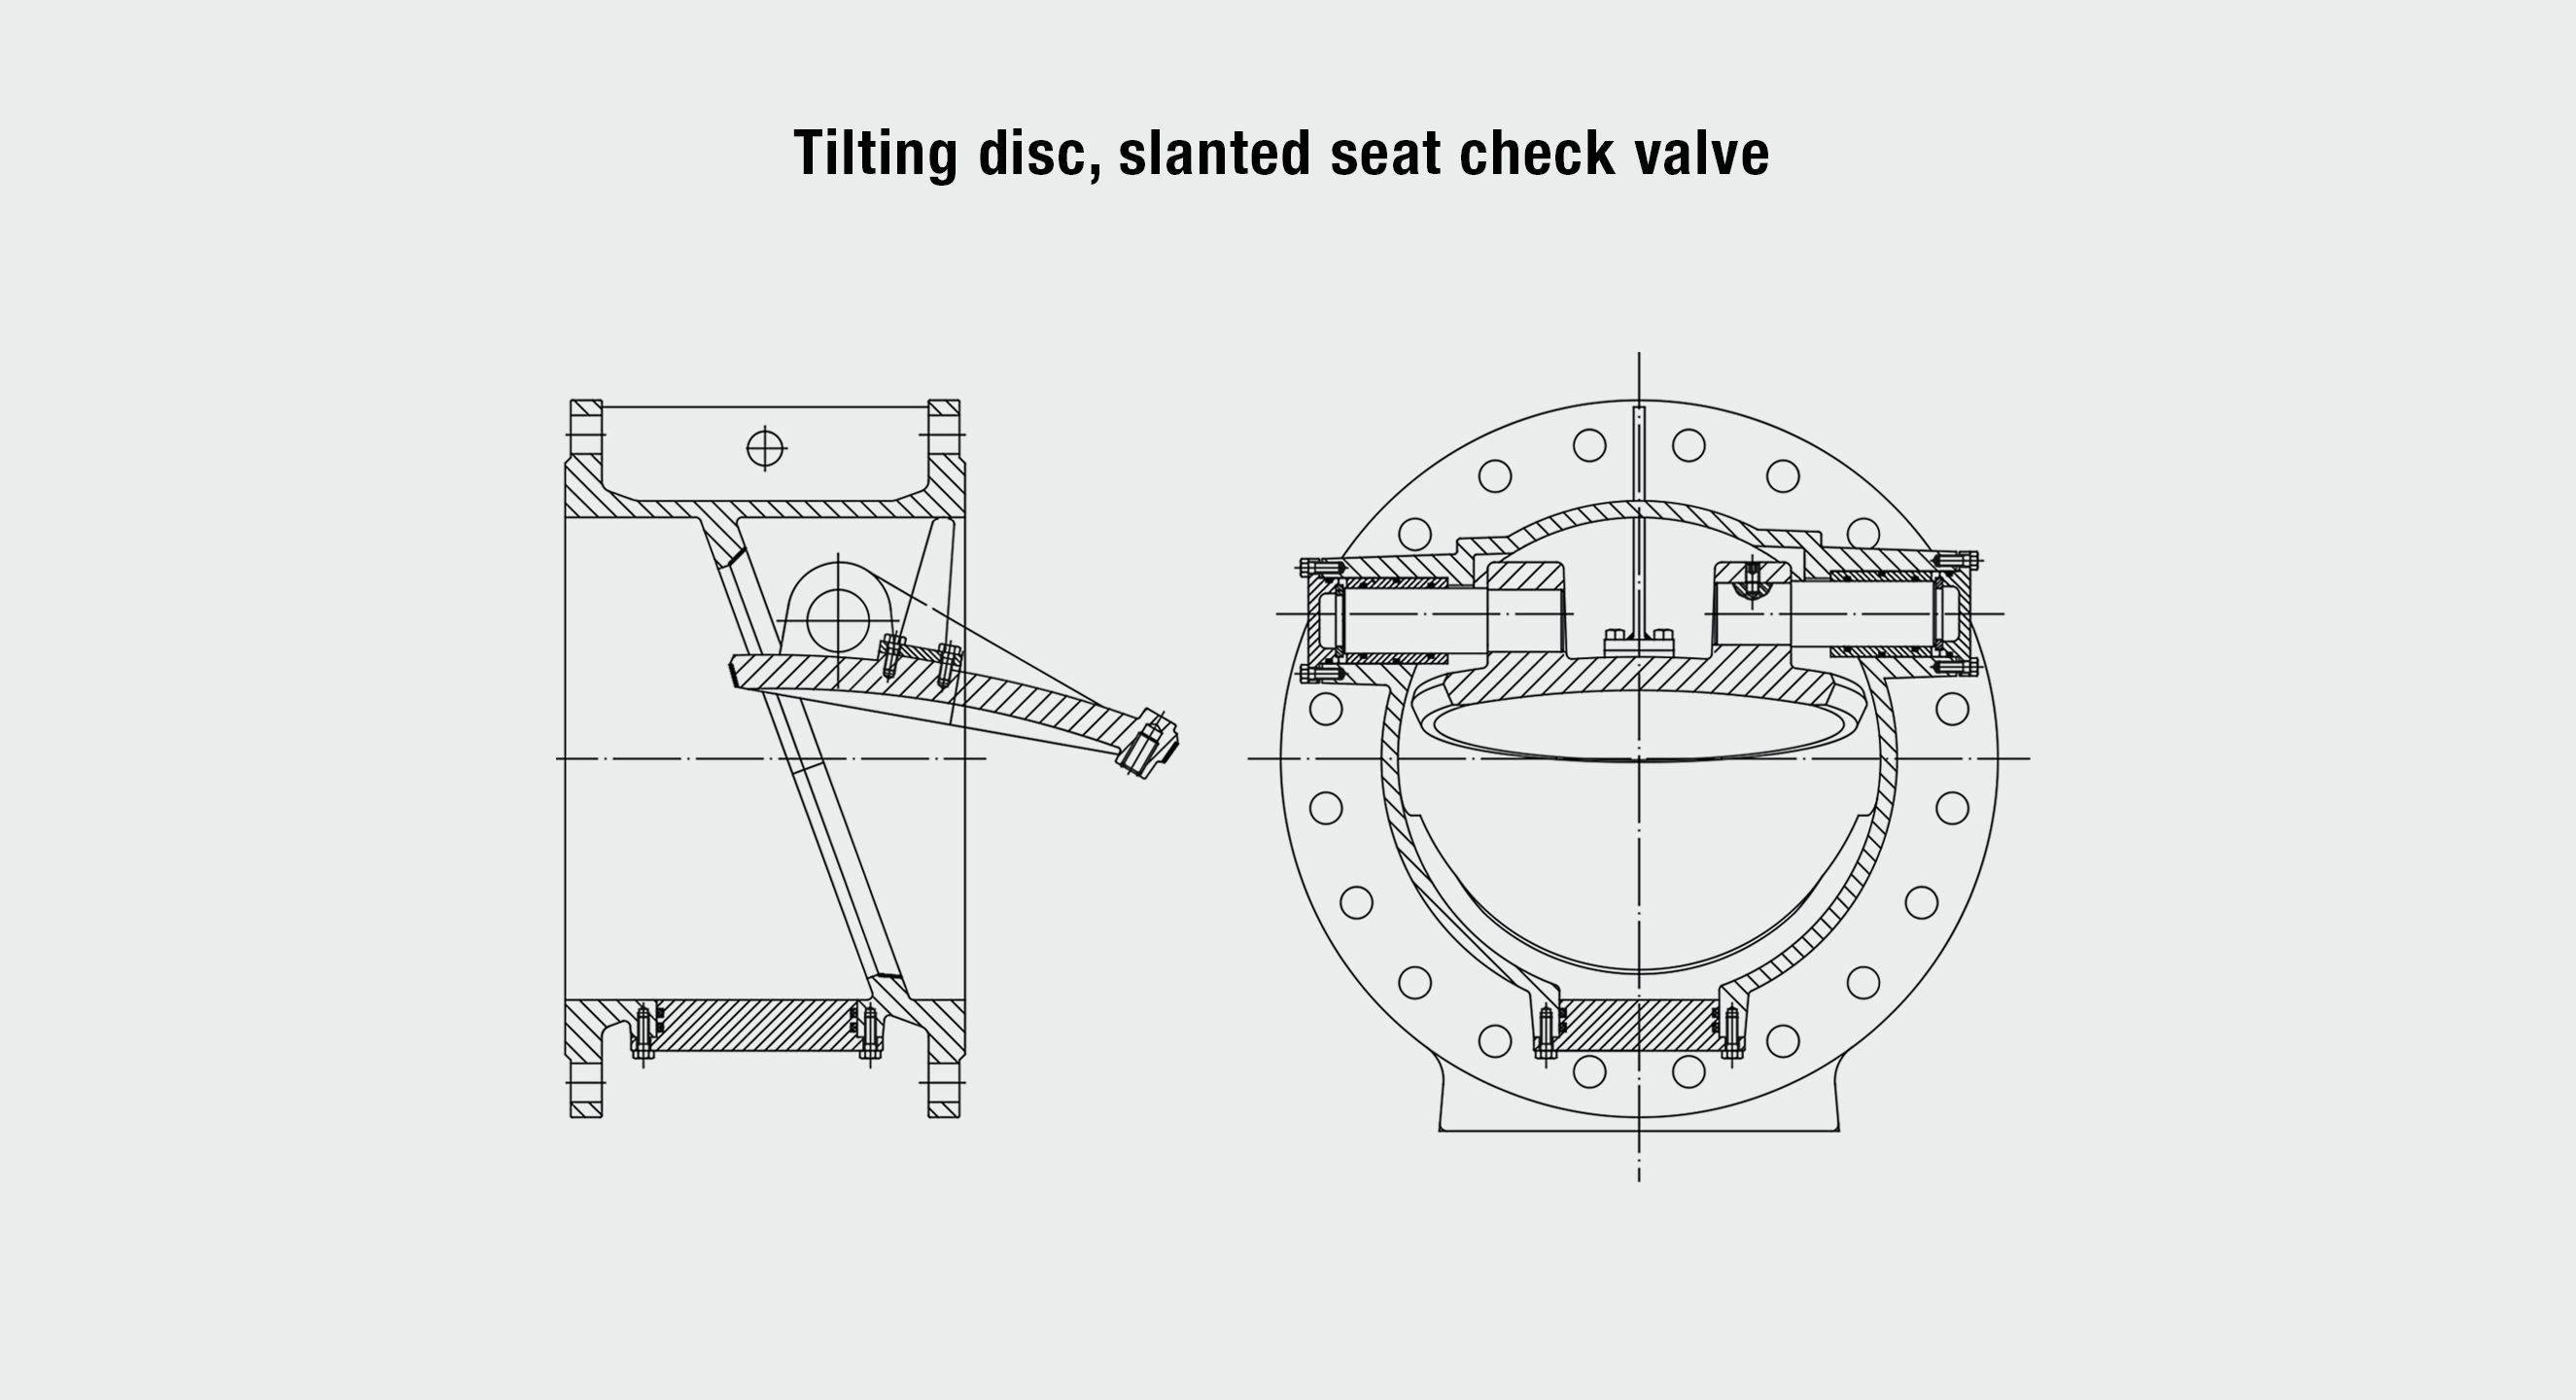 Product drawing of AVK tilting disc, slanted seat check valve